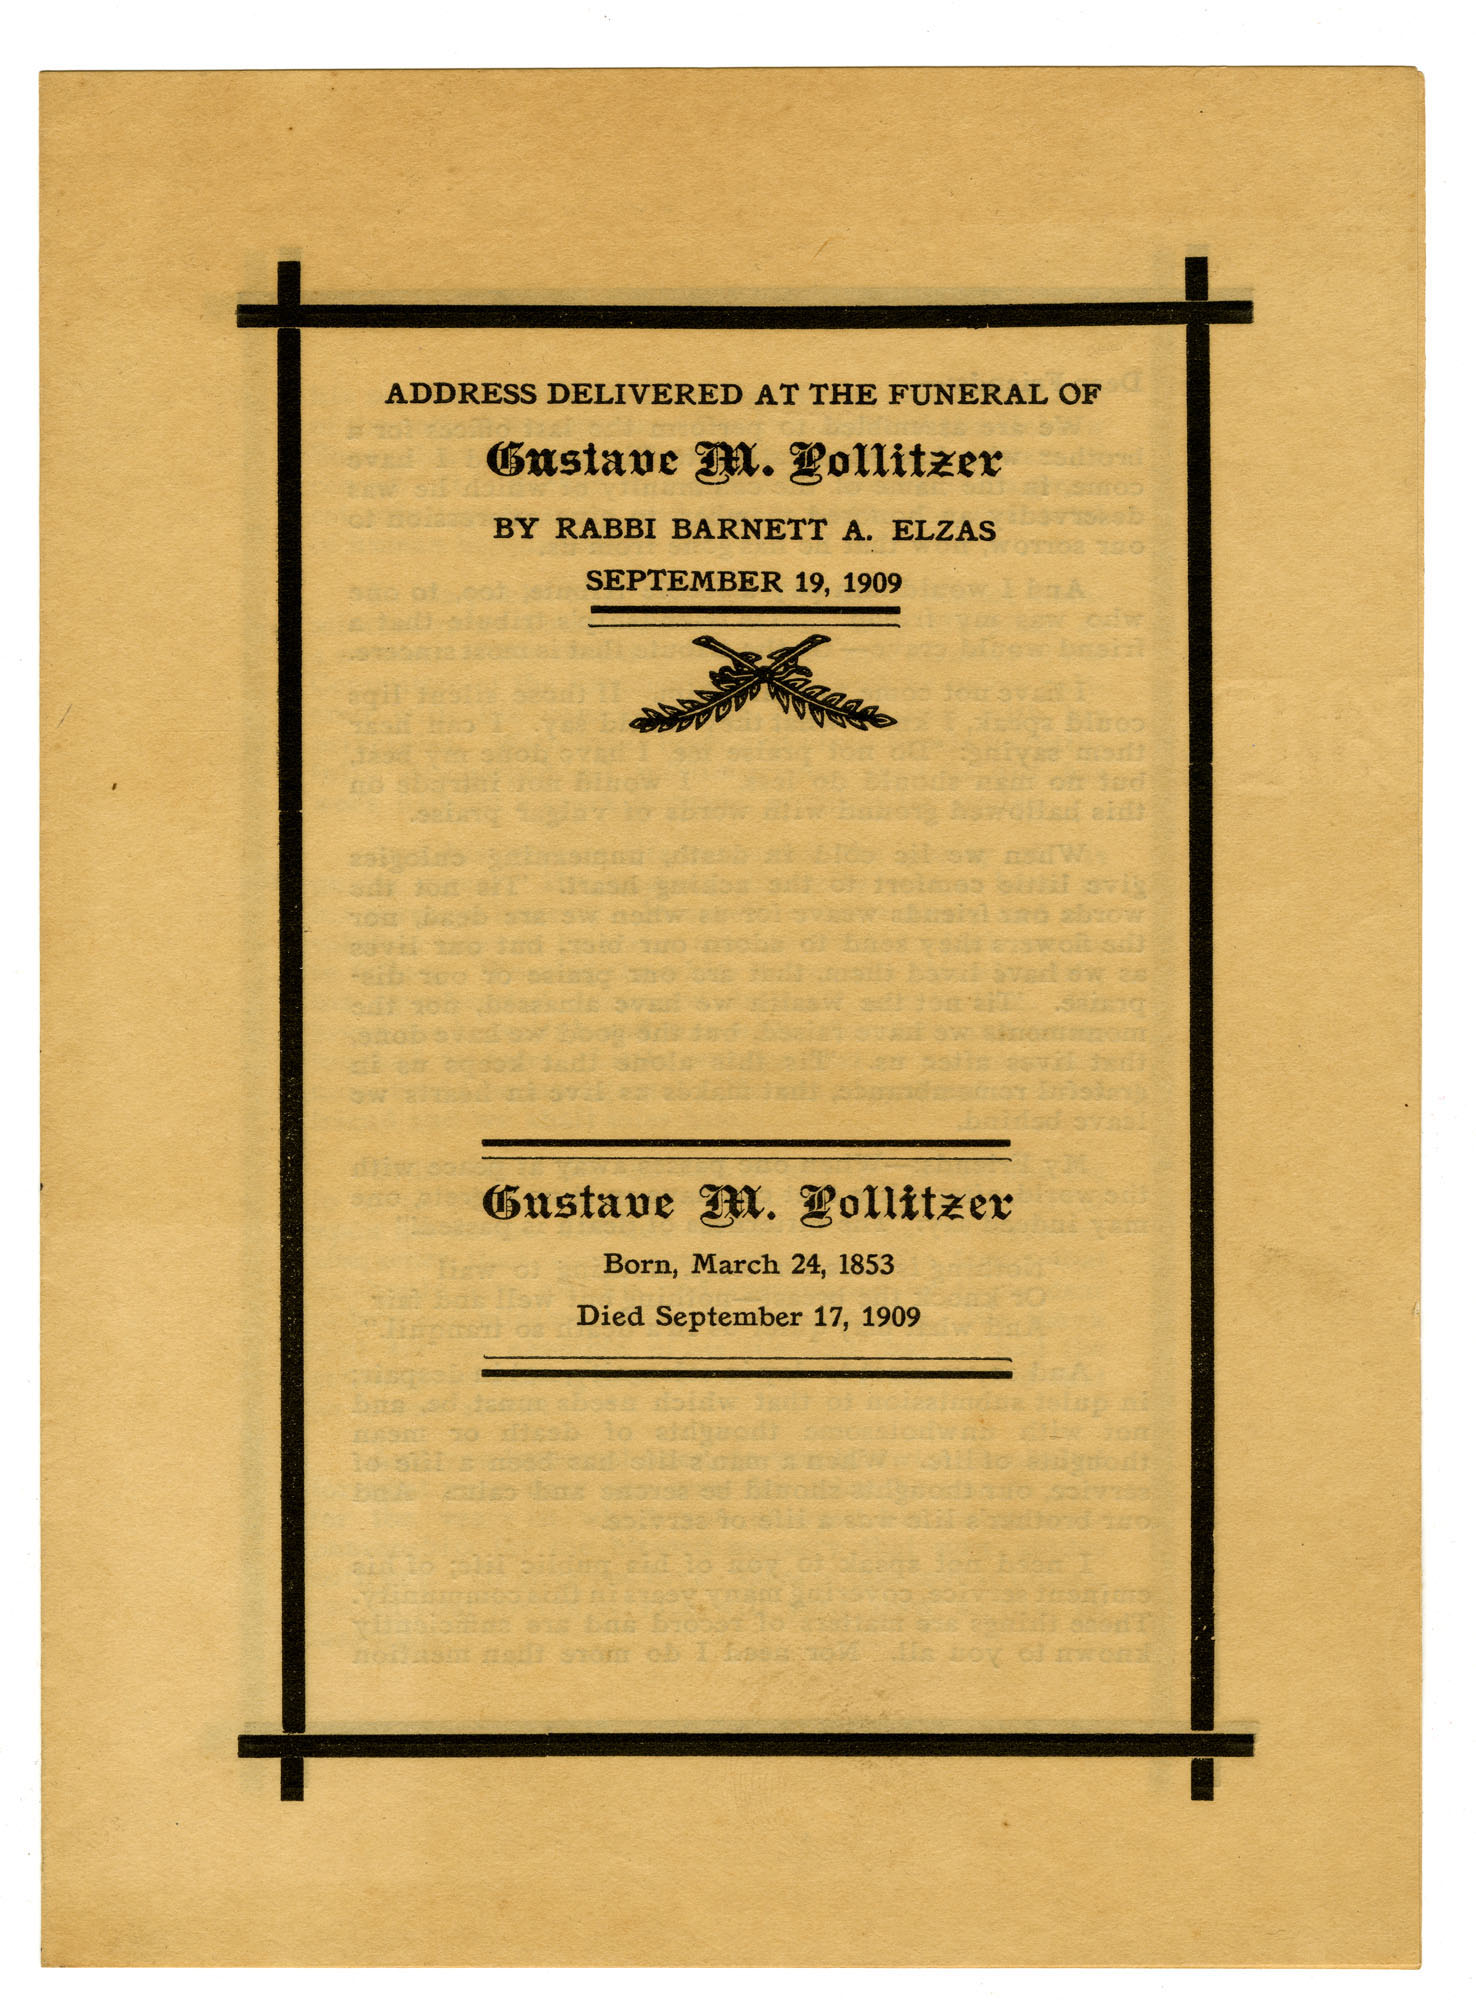 Funeral program for Gustave M. Pollitzer, page1